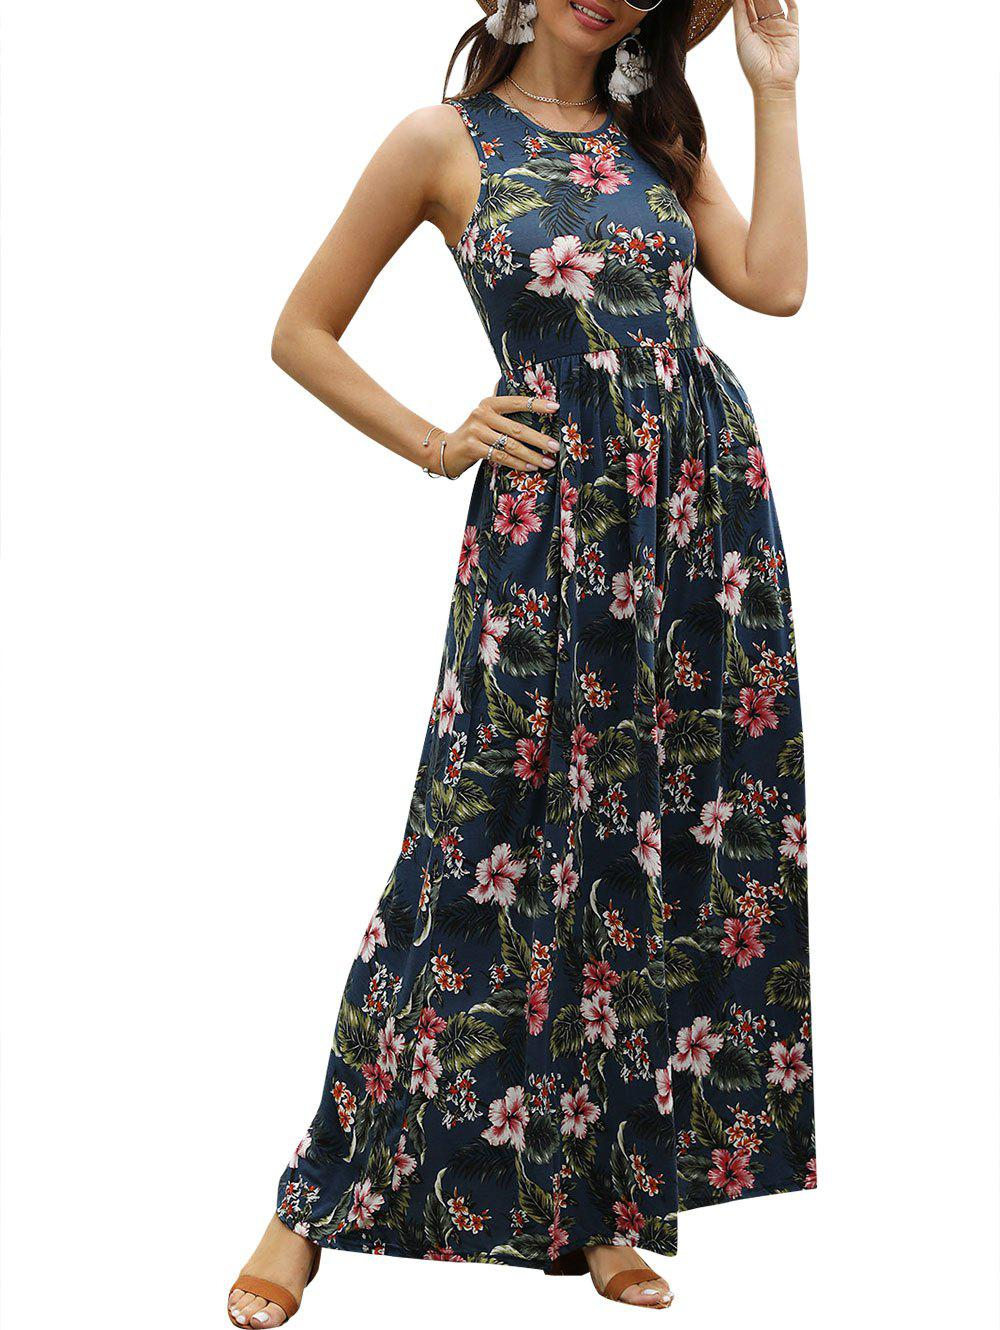 Floral Print Sleeveless Maxi Dress - MIDNIGHT BLUE XL